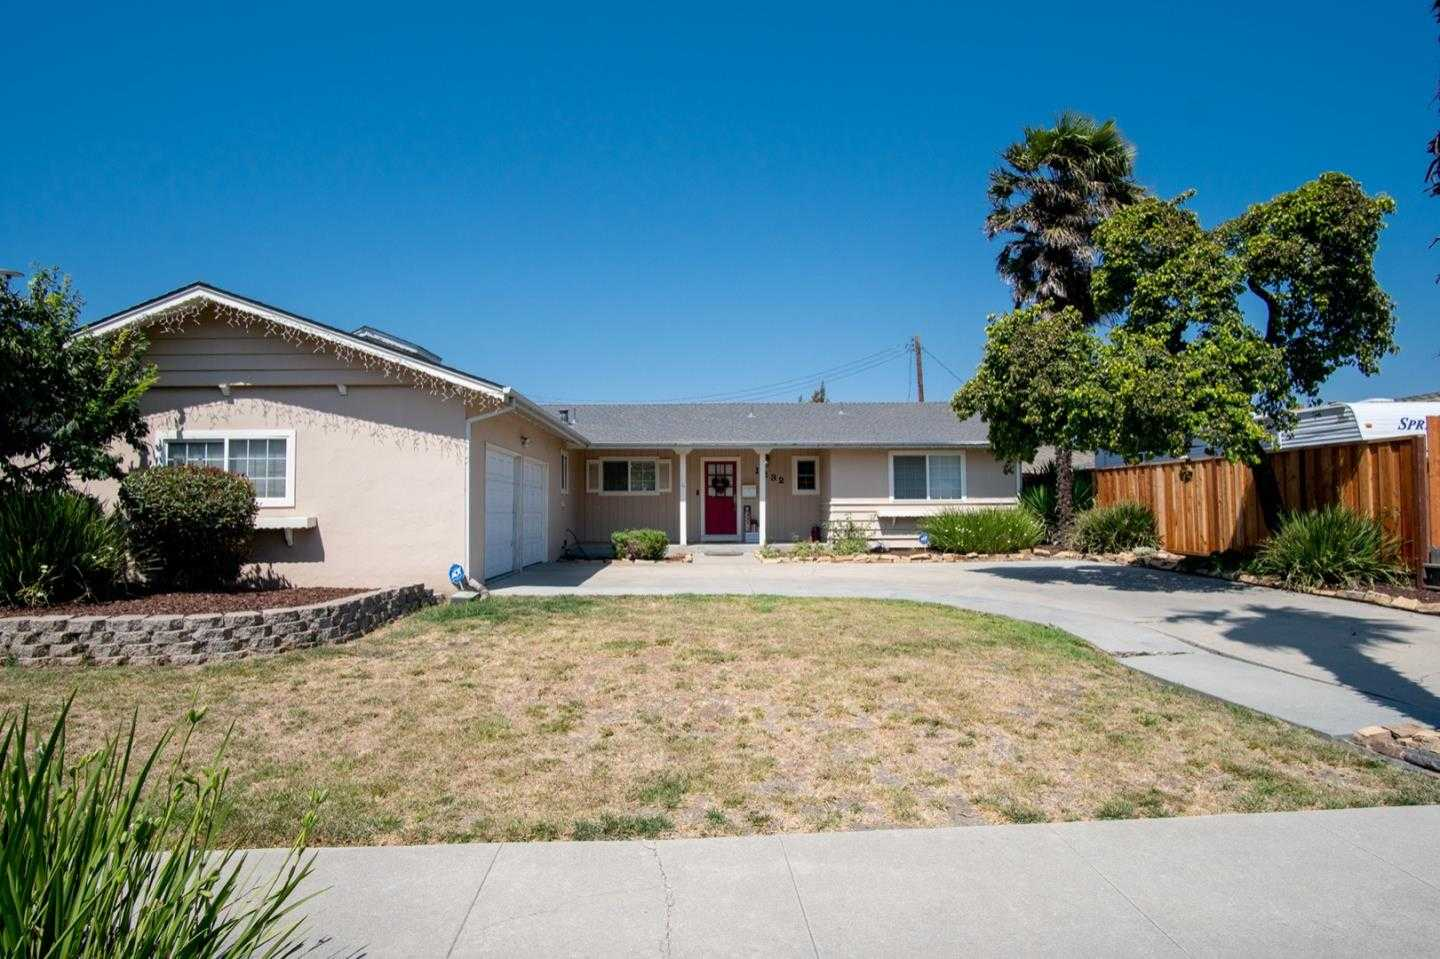 $649,000 - 4Br/2Ba -  for Sale in Salinas